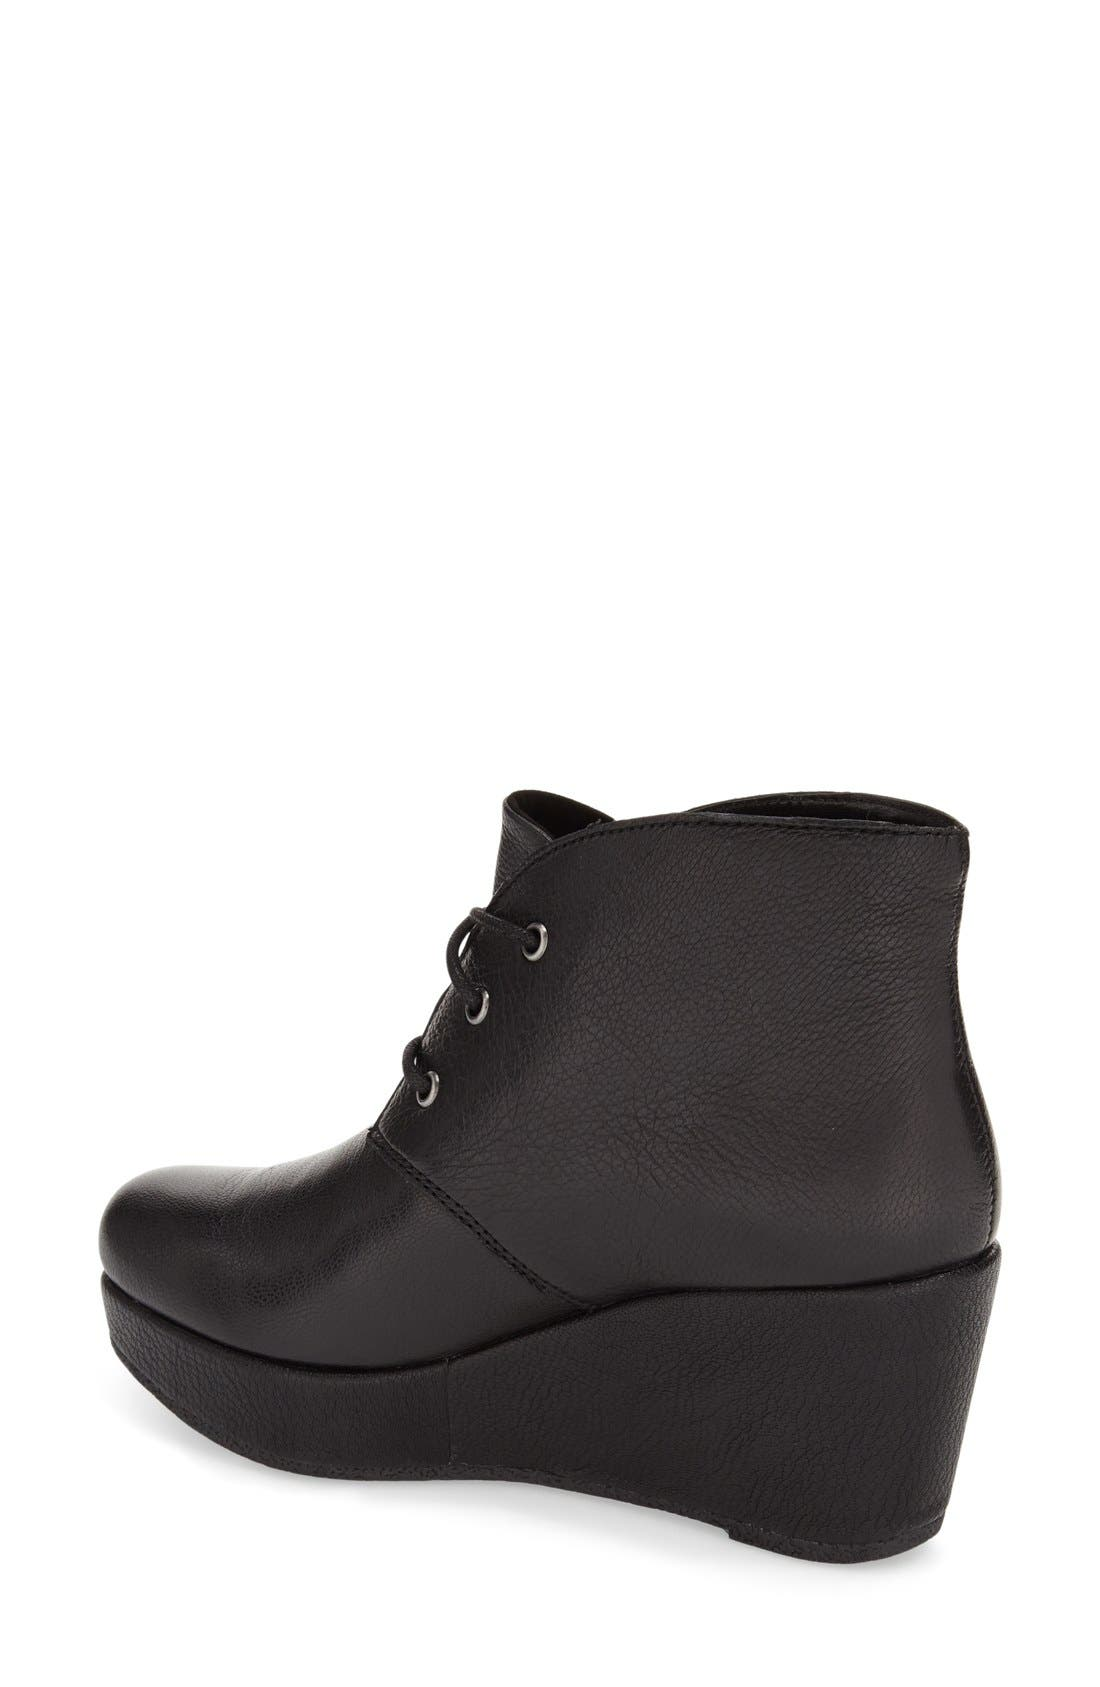 Alternate Image 2  - BCBGeneration 'Kenan' Platform Wedge Boot (Women)